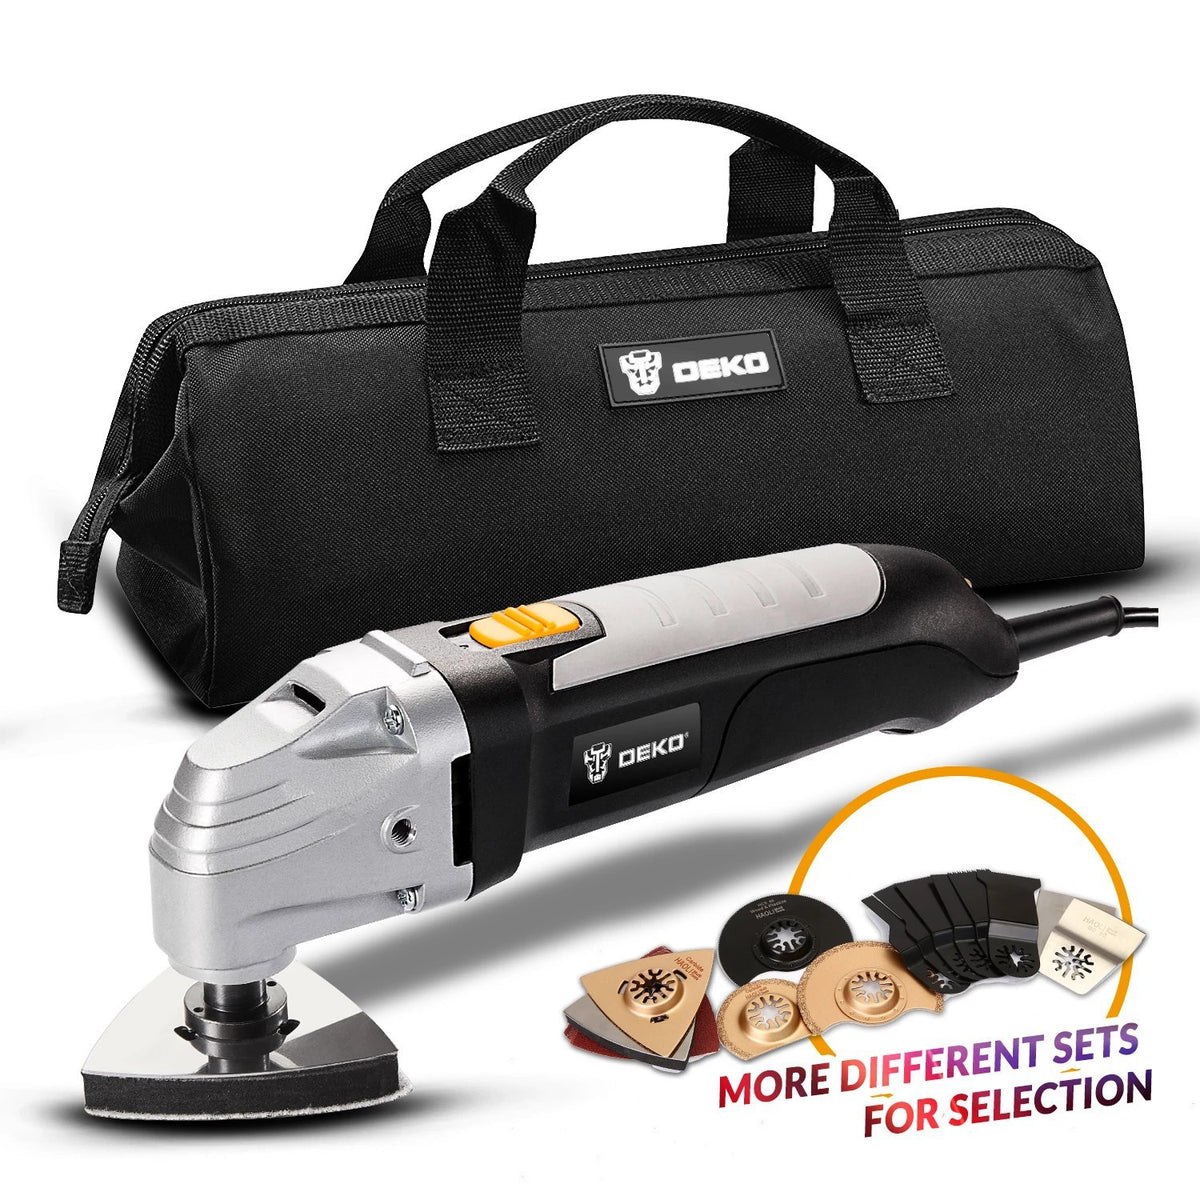 Multifunction Oscillating Tool Kit